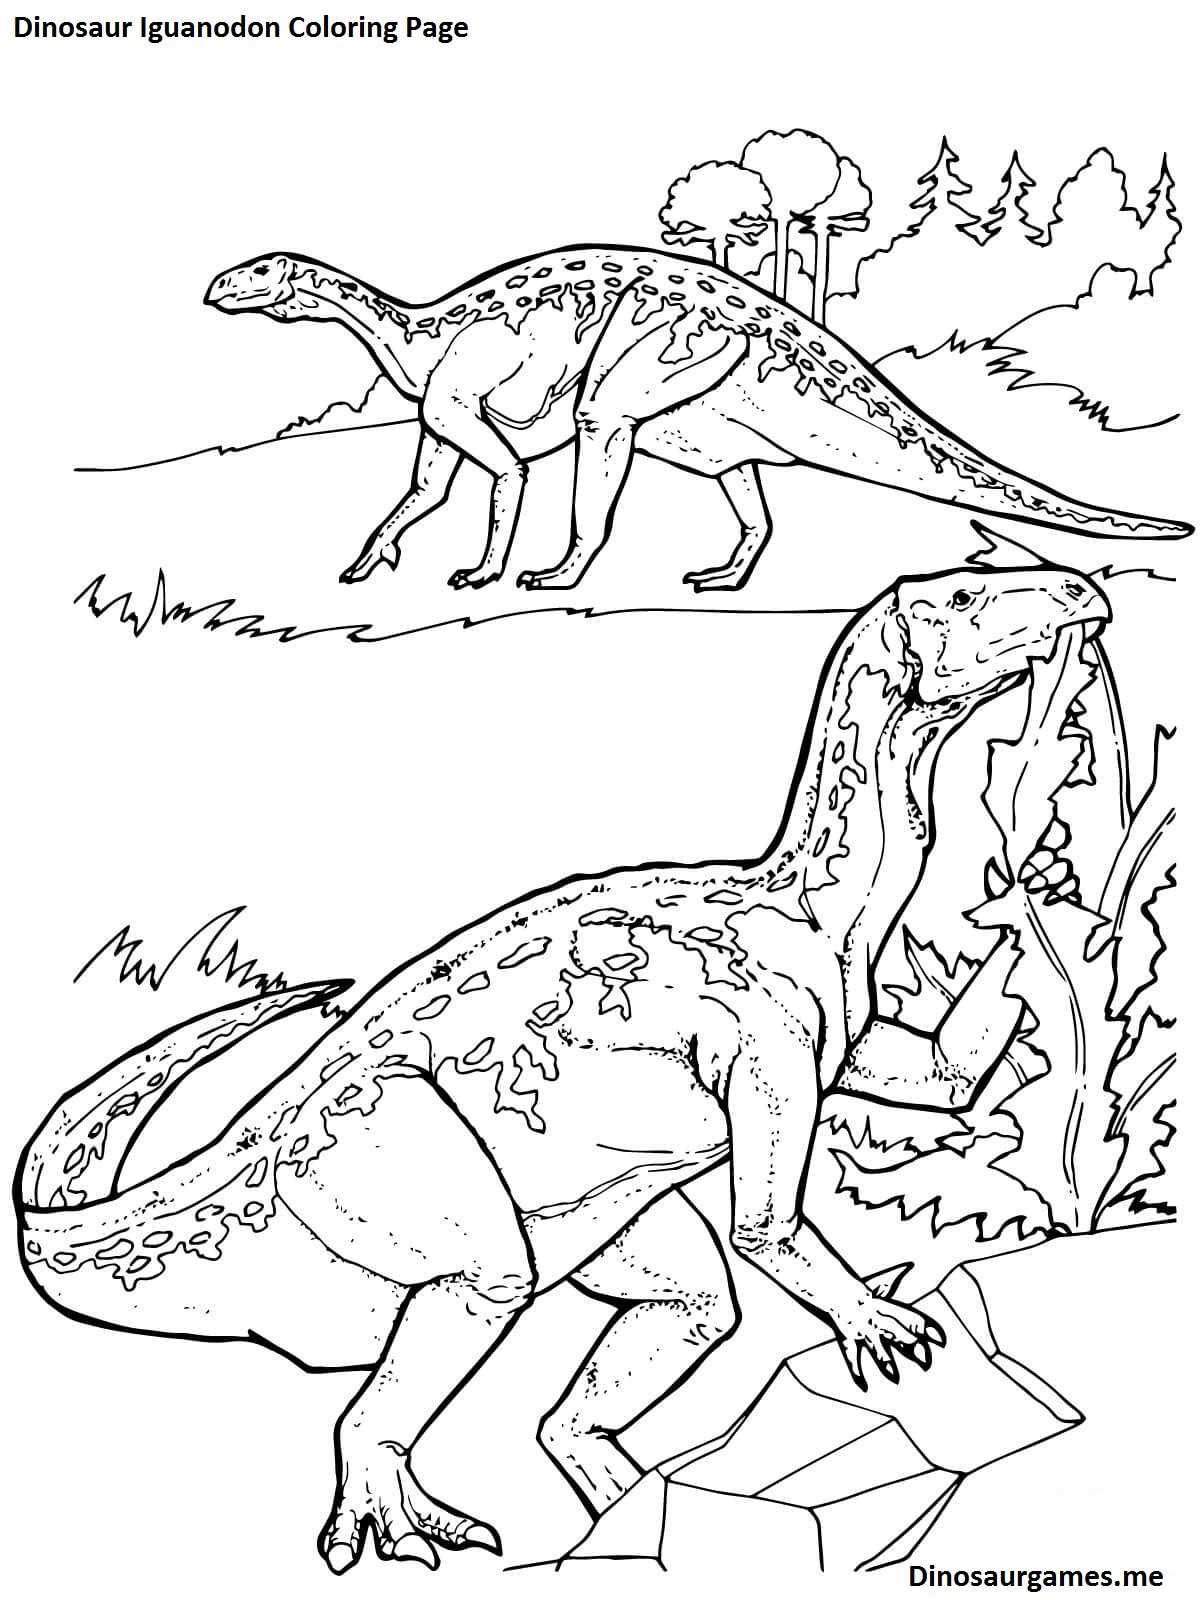 Discover All The Prehistoric Animals You Can Color On The Dinosaur ...